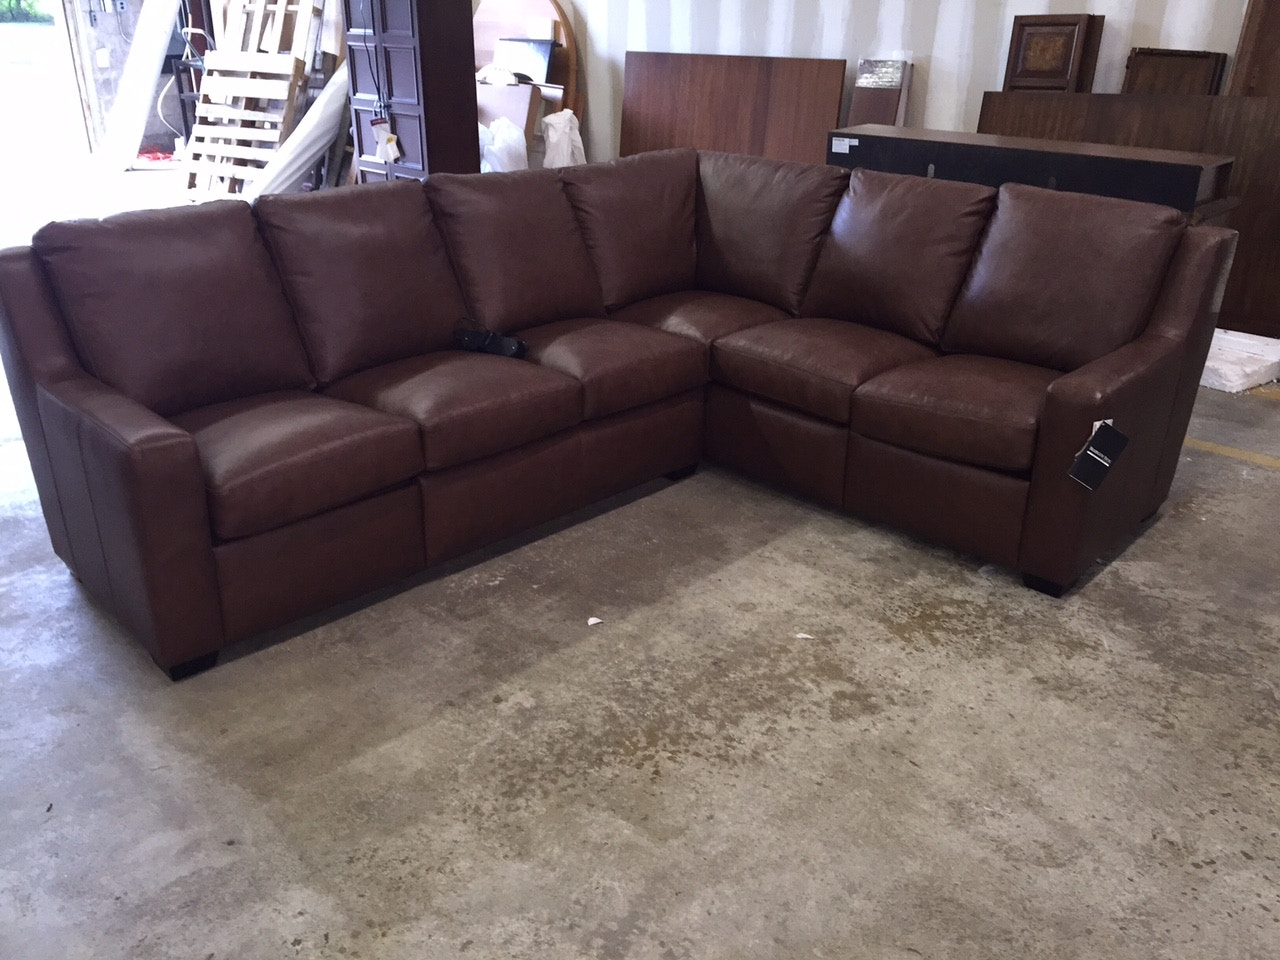 922-74-19. Bradington Young power reclining sectional : bradington young sectionals - Sectionals, Sofas & Couches